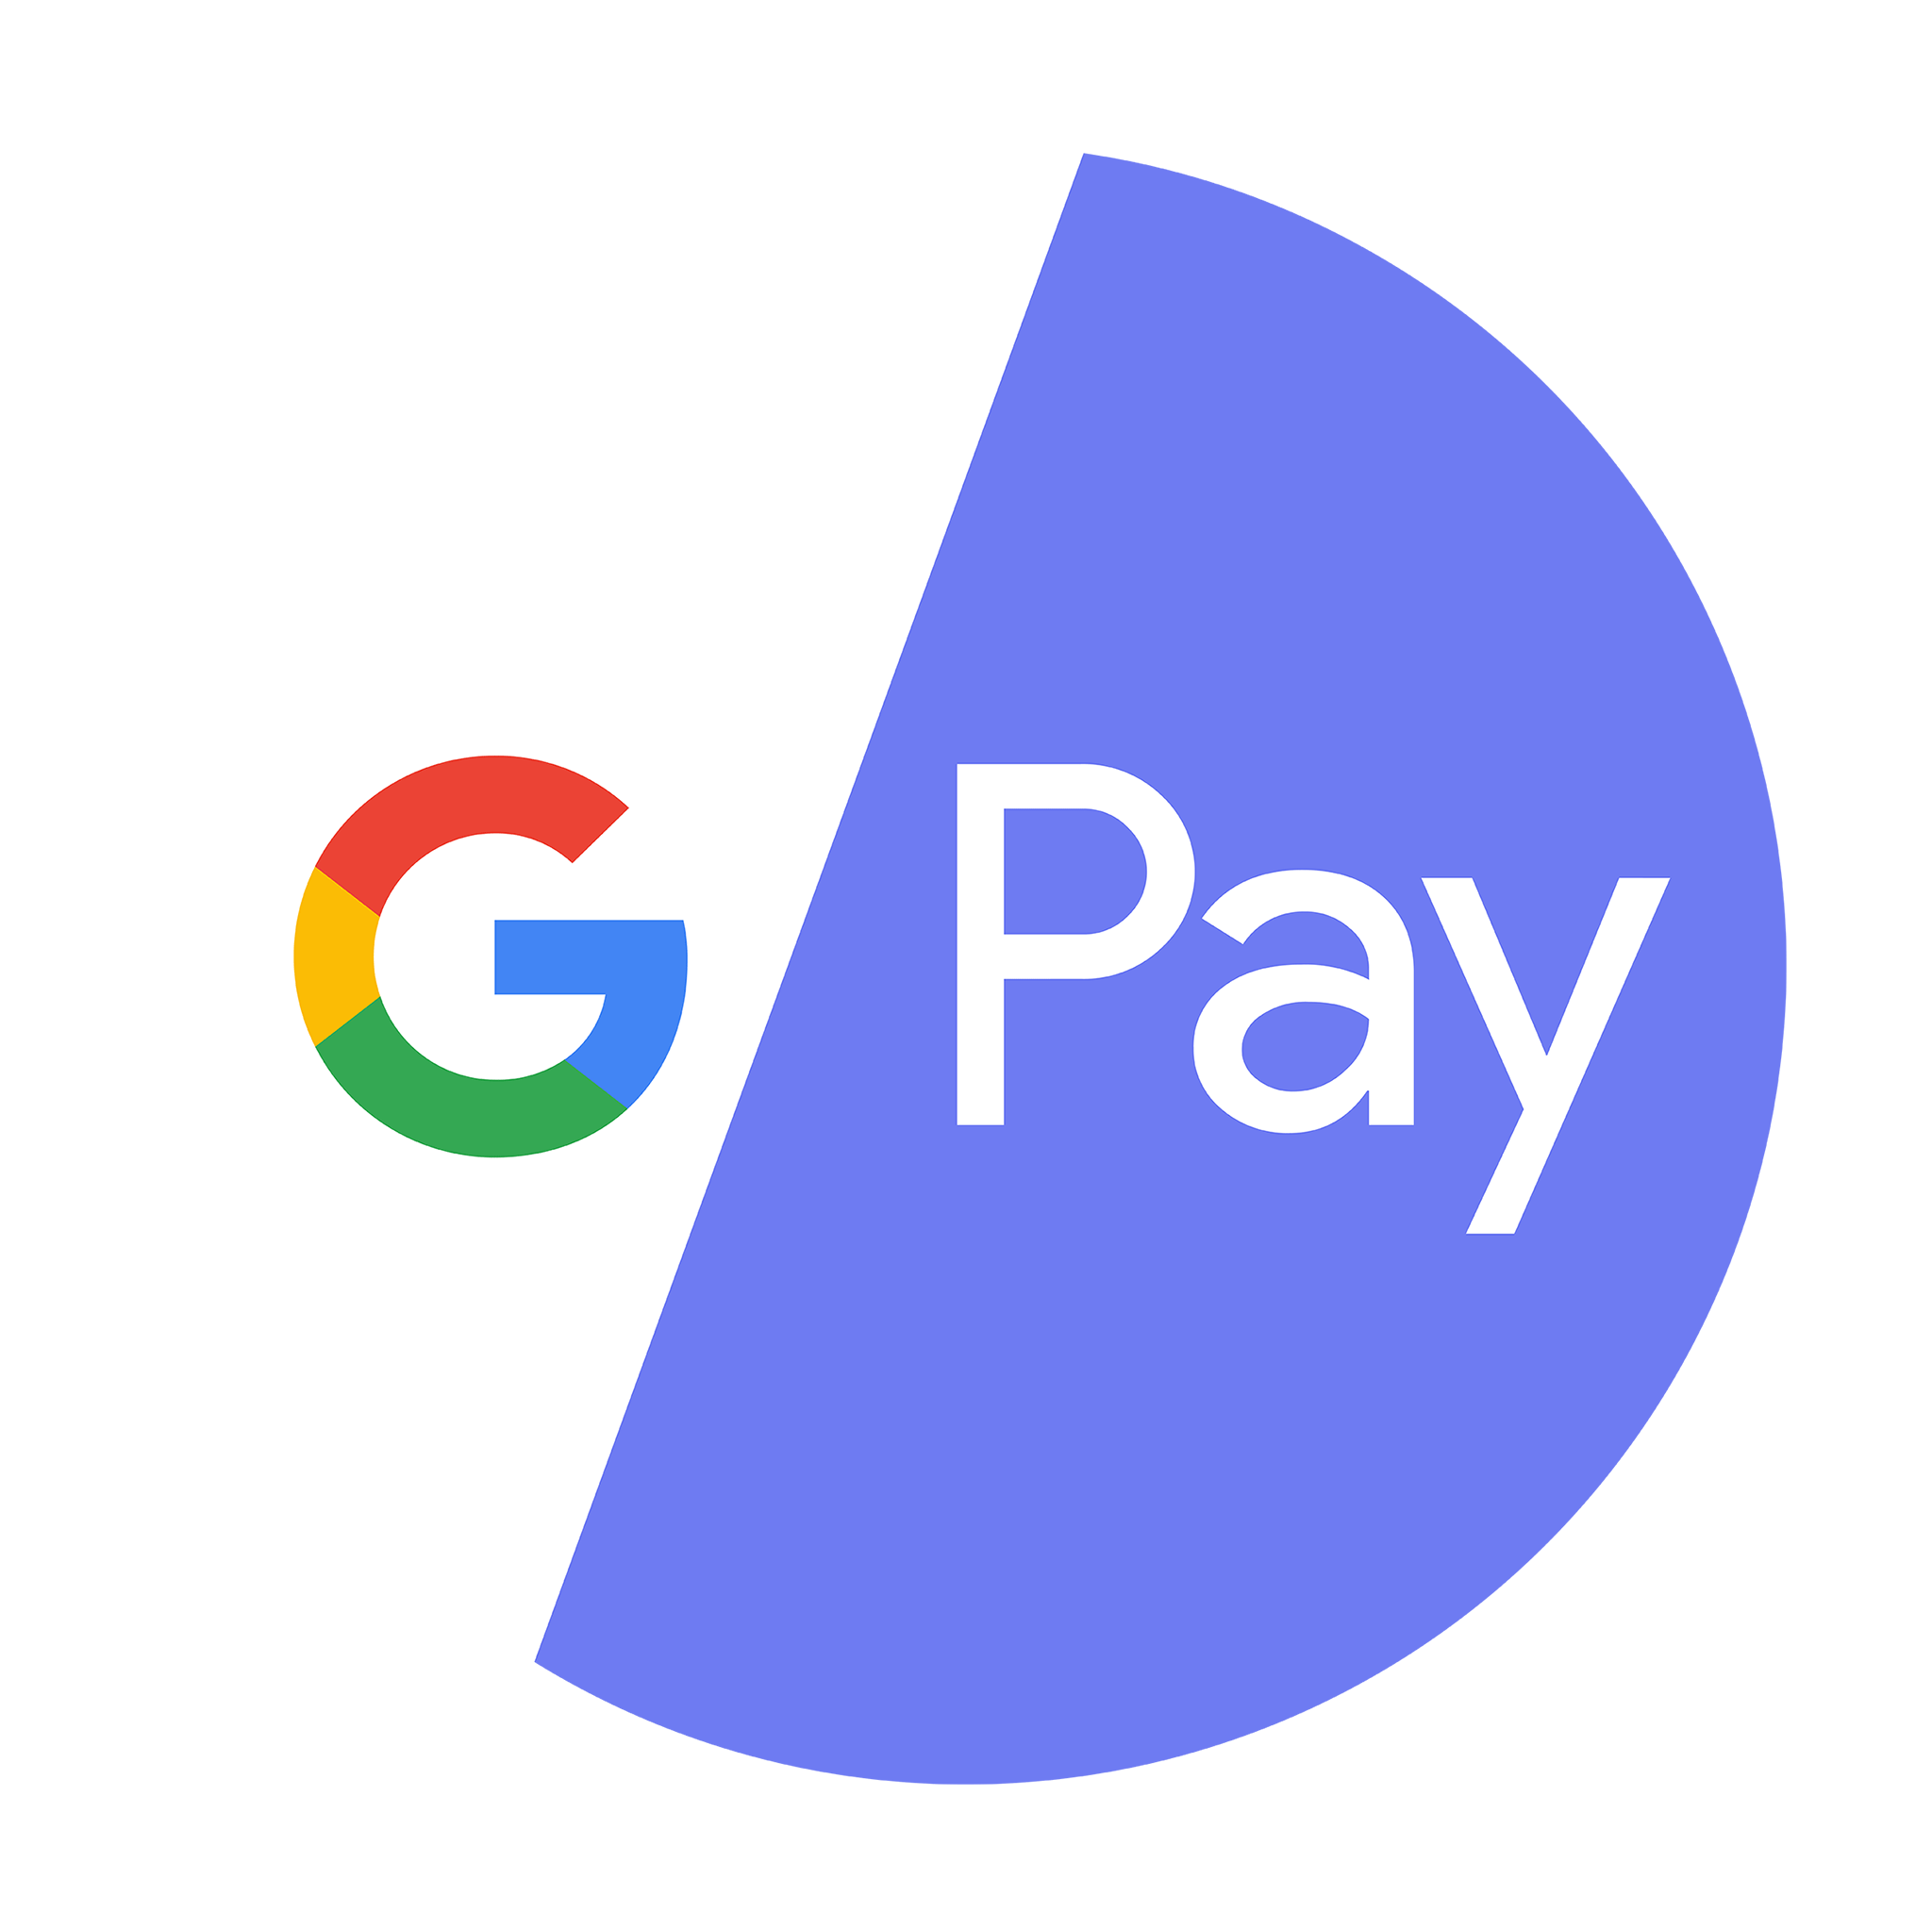 Google Pay Logo Icon Png Image Free Download Logos Steve Madden Store Steve Madden Outlet